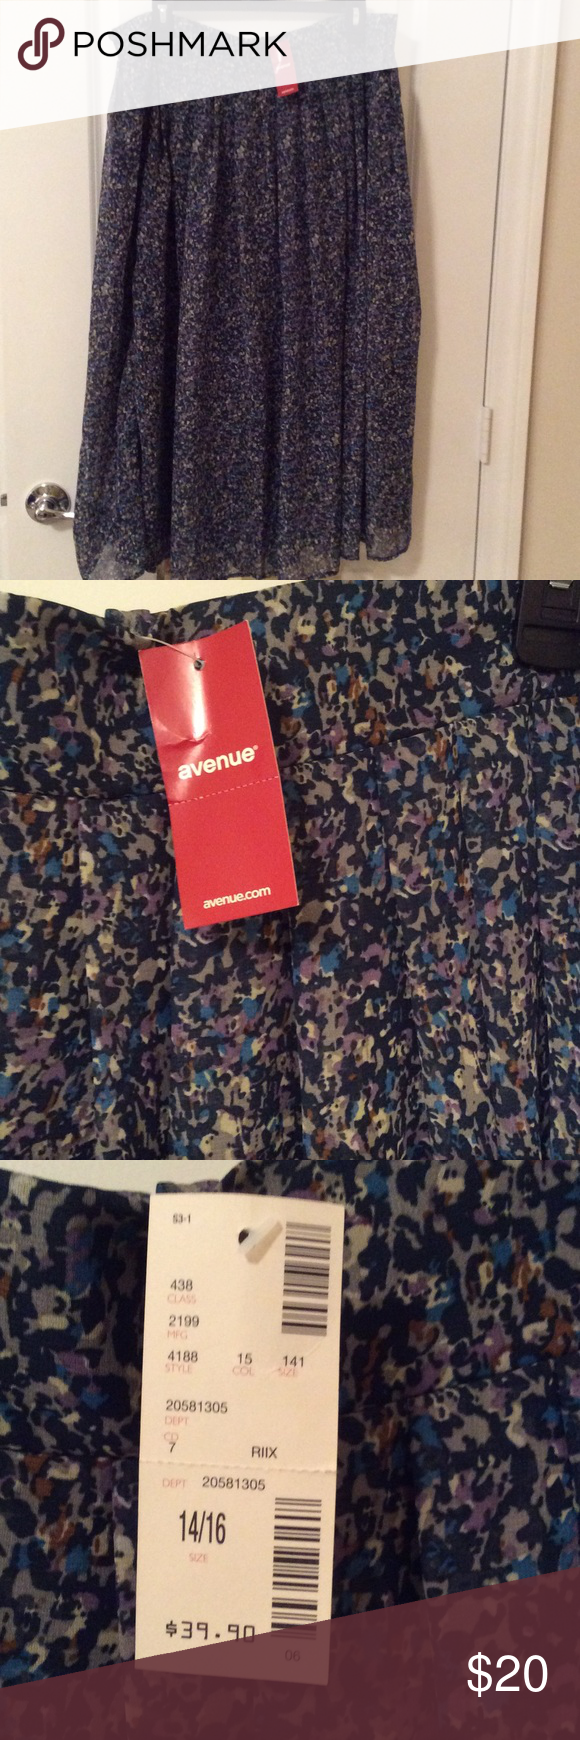 Avenue Flaired Skirt in blue green pattern lined BWT Avenue Sheer Skirt in blue and green pattern.  100% polyester.  Lined in navy.  Very full skirt with plain waist band in front and elastic and gathered waist in back.  Machine washable on gentle hang to dry. Avenue Skirts A-Line or Full